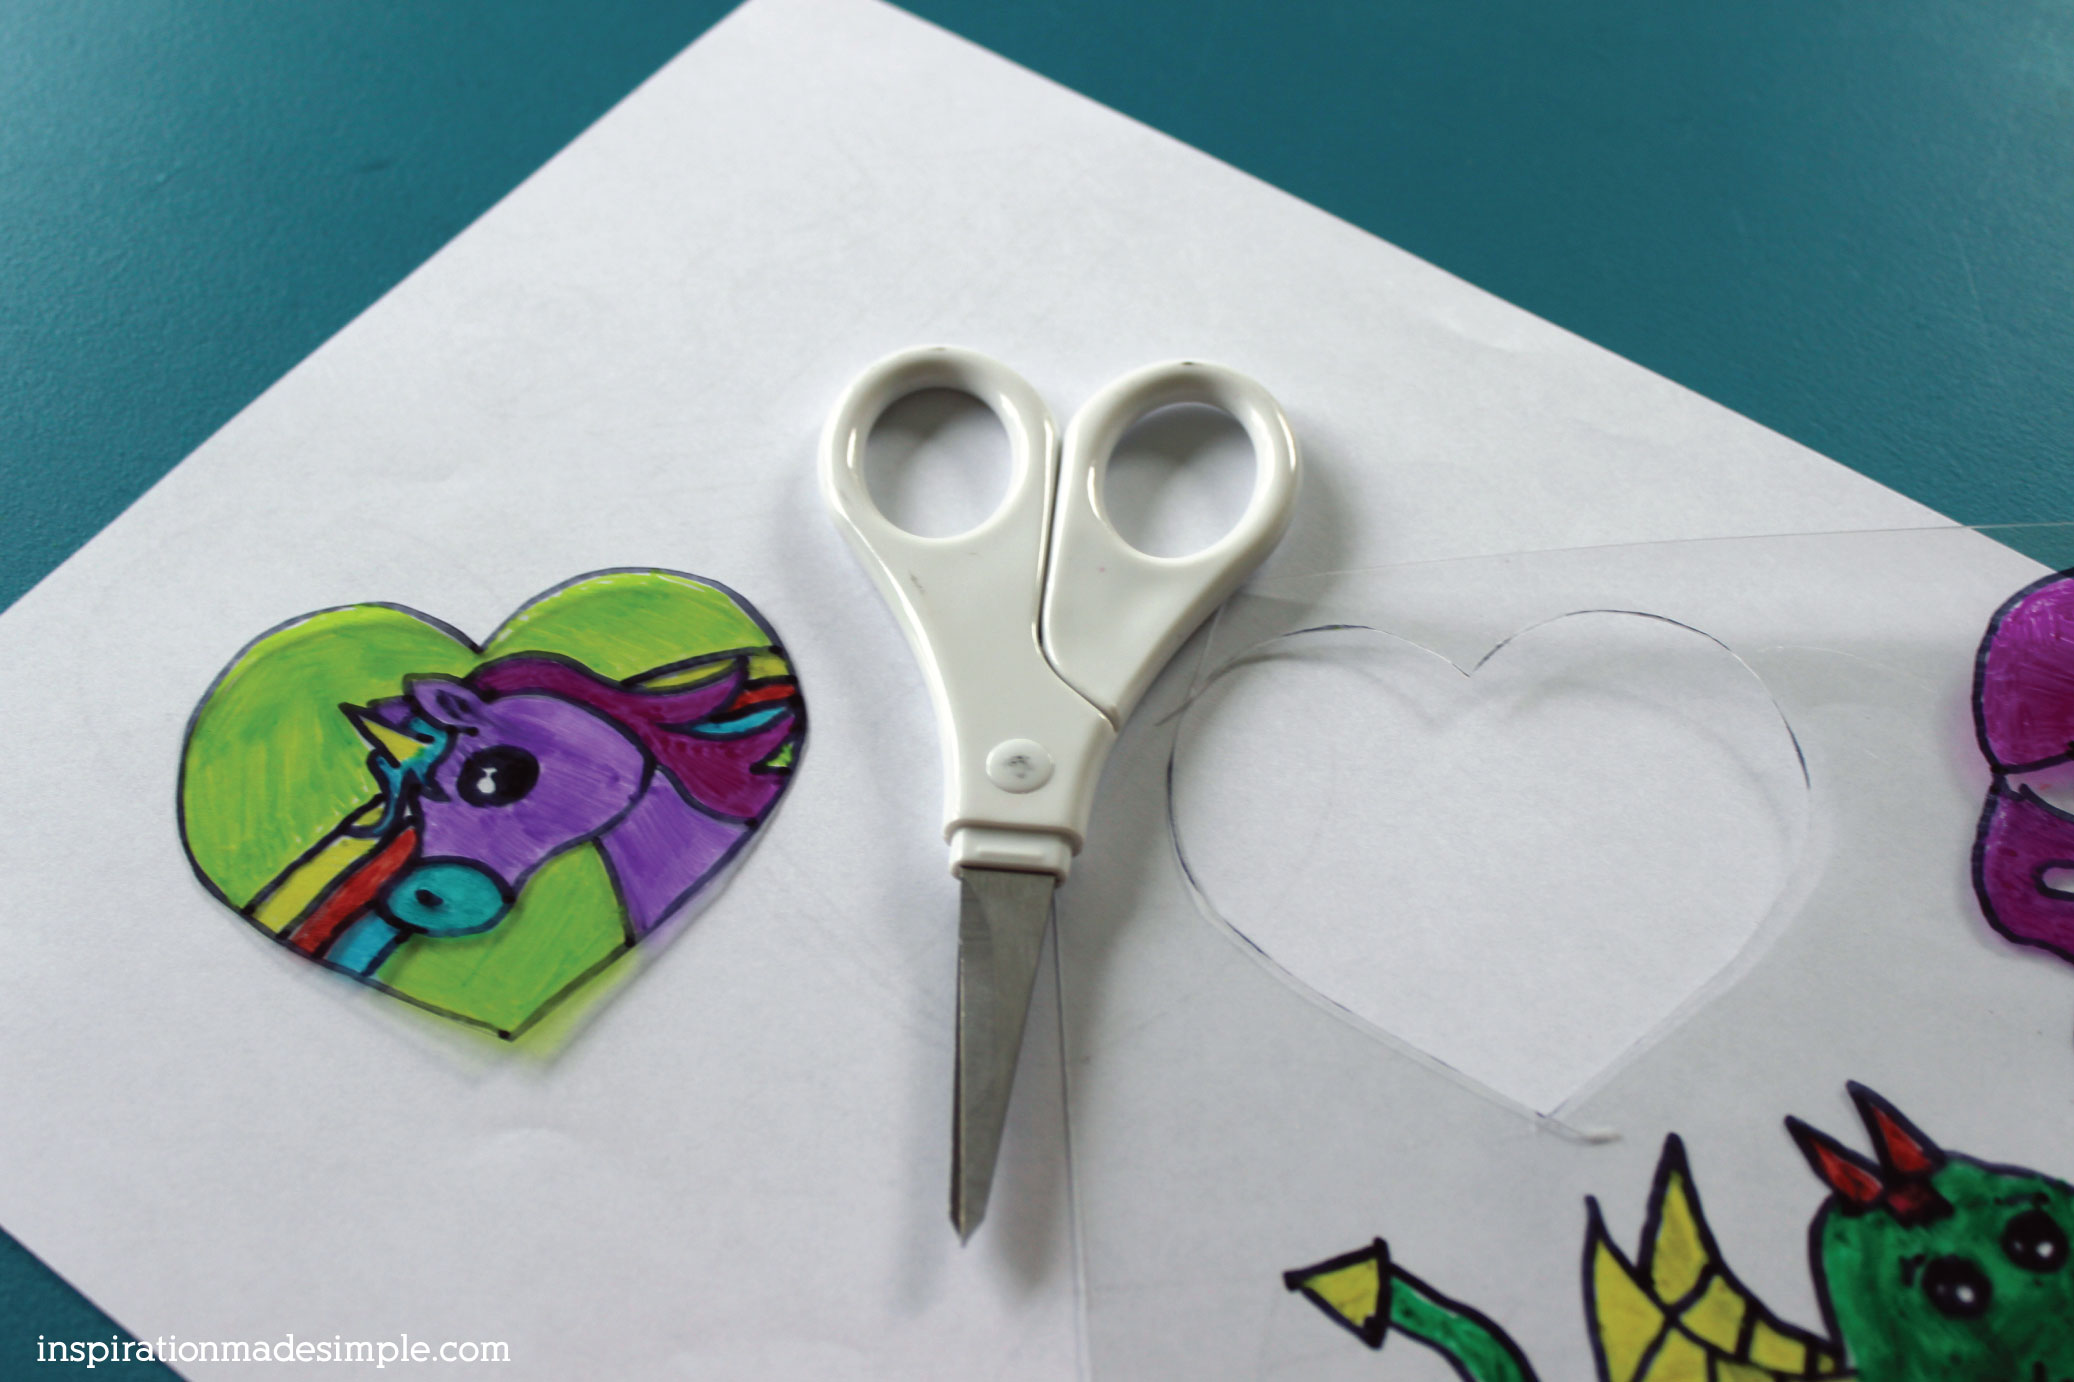 DIY Shrink Film Stencils to create Zipper Pulls and Pins!